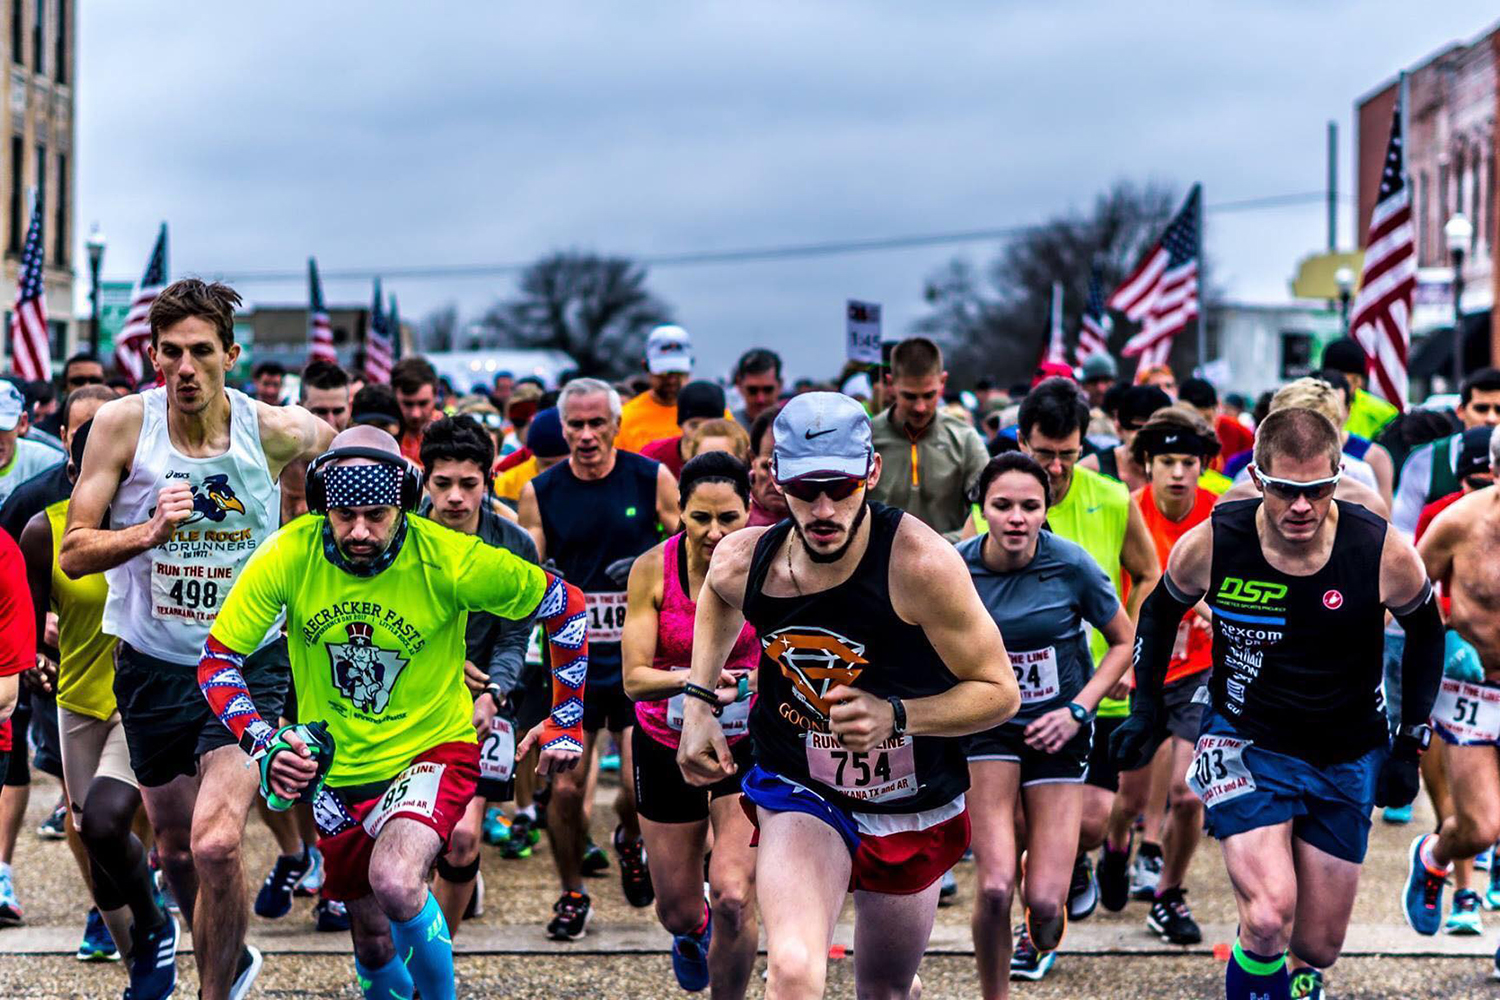 Submitted Photo - Local runners participate in Run the Line held on State Line. The annual race is anticipated to be the largest event yet.